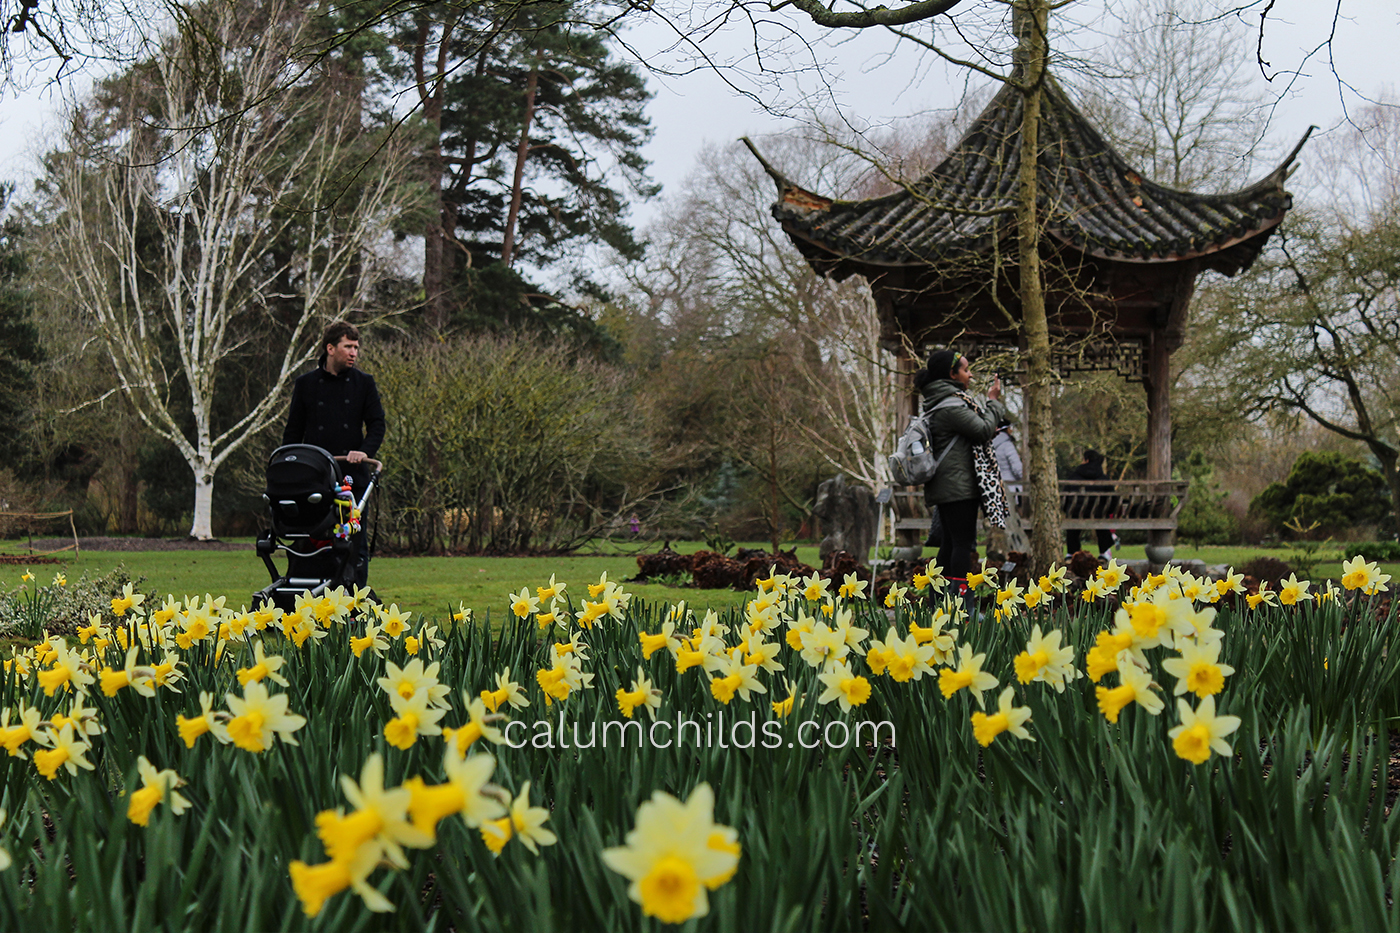 Daffodils grow in the foreground whilst a few people walk in the background.